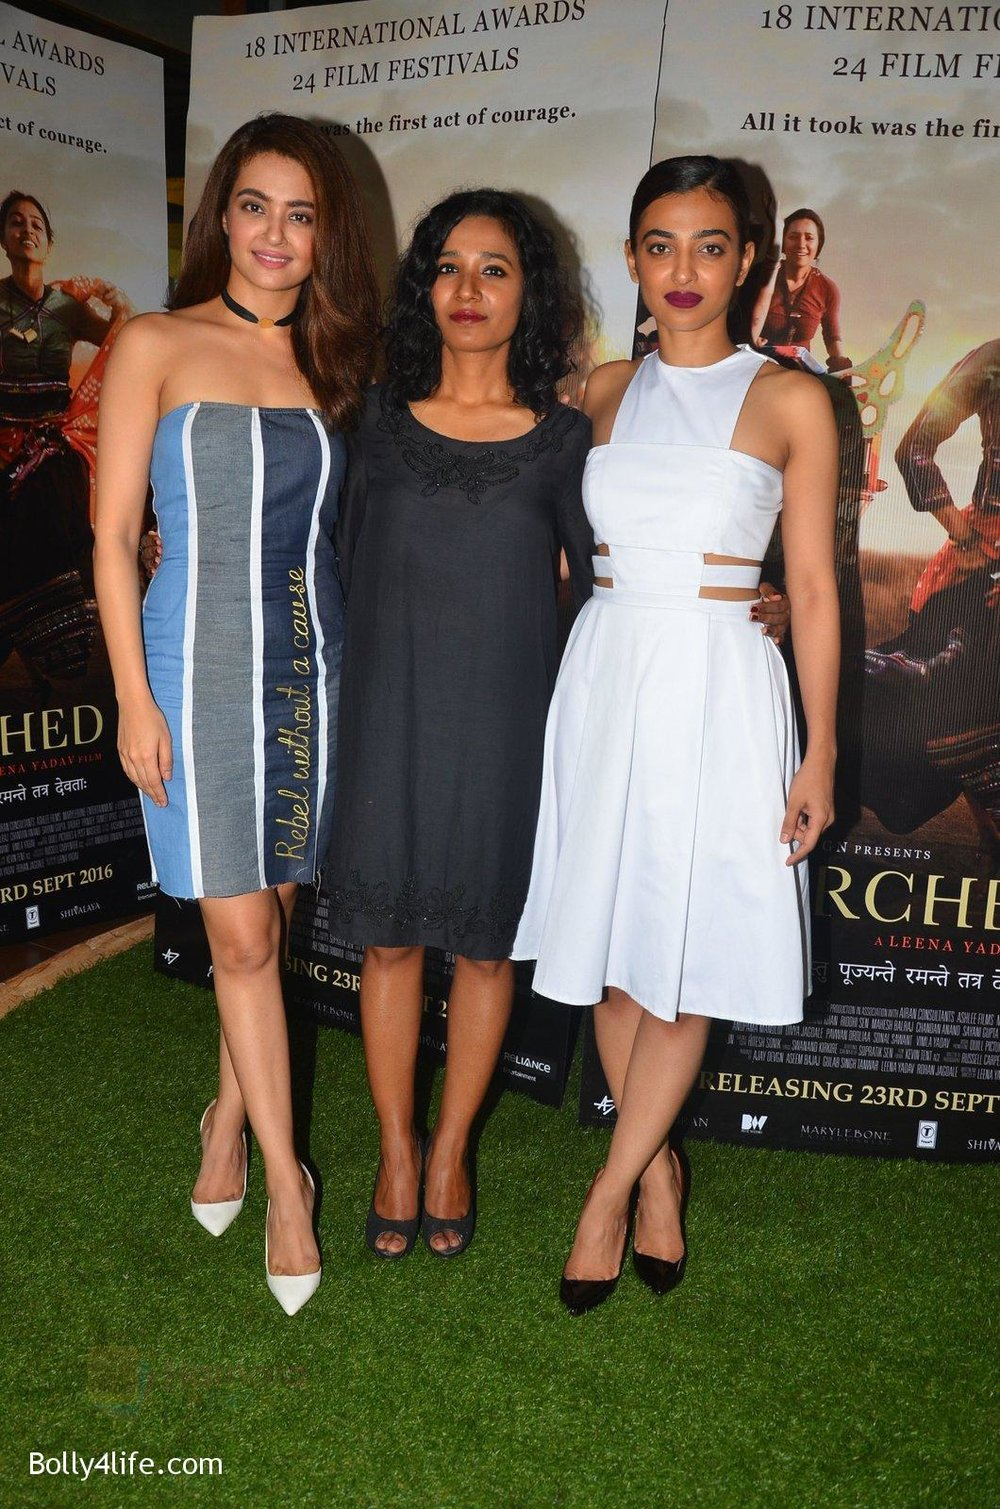 Surveen-Chawla-Tannishtha-Chatterjee-Radhika-Apte-at-Parched-Photoshoot-on-17th-Sept-2016-28.jpg